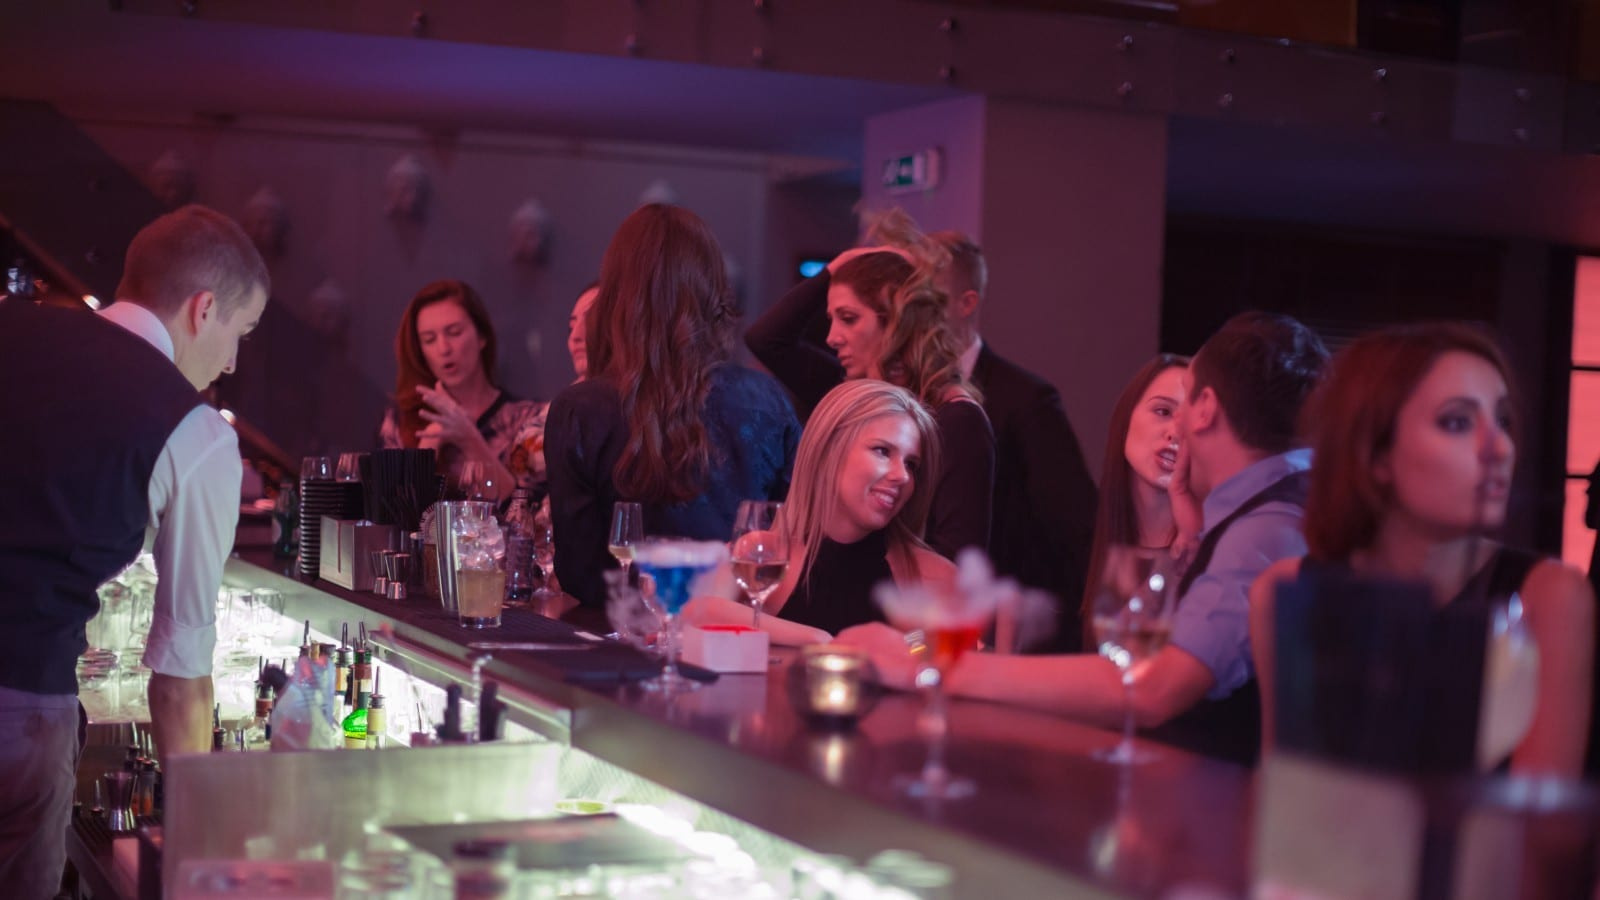 Busy Bar Stock Photo